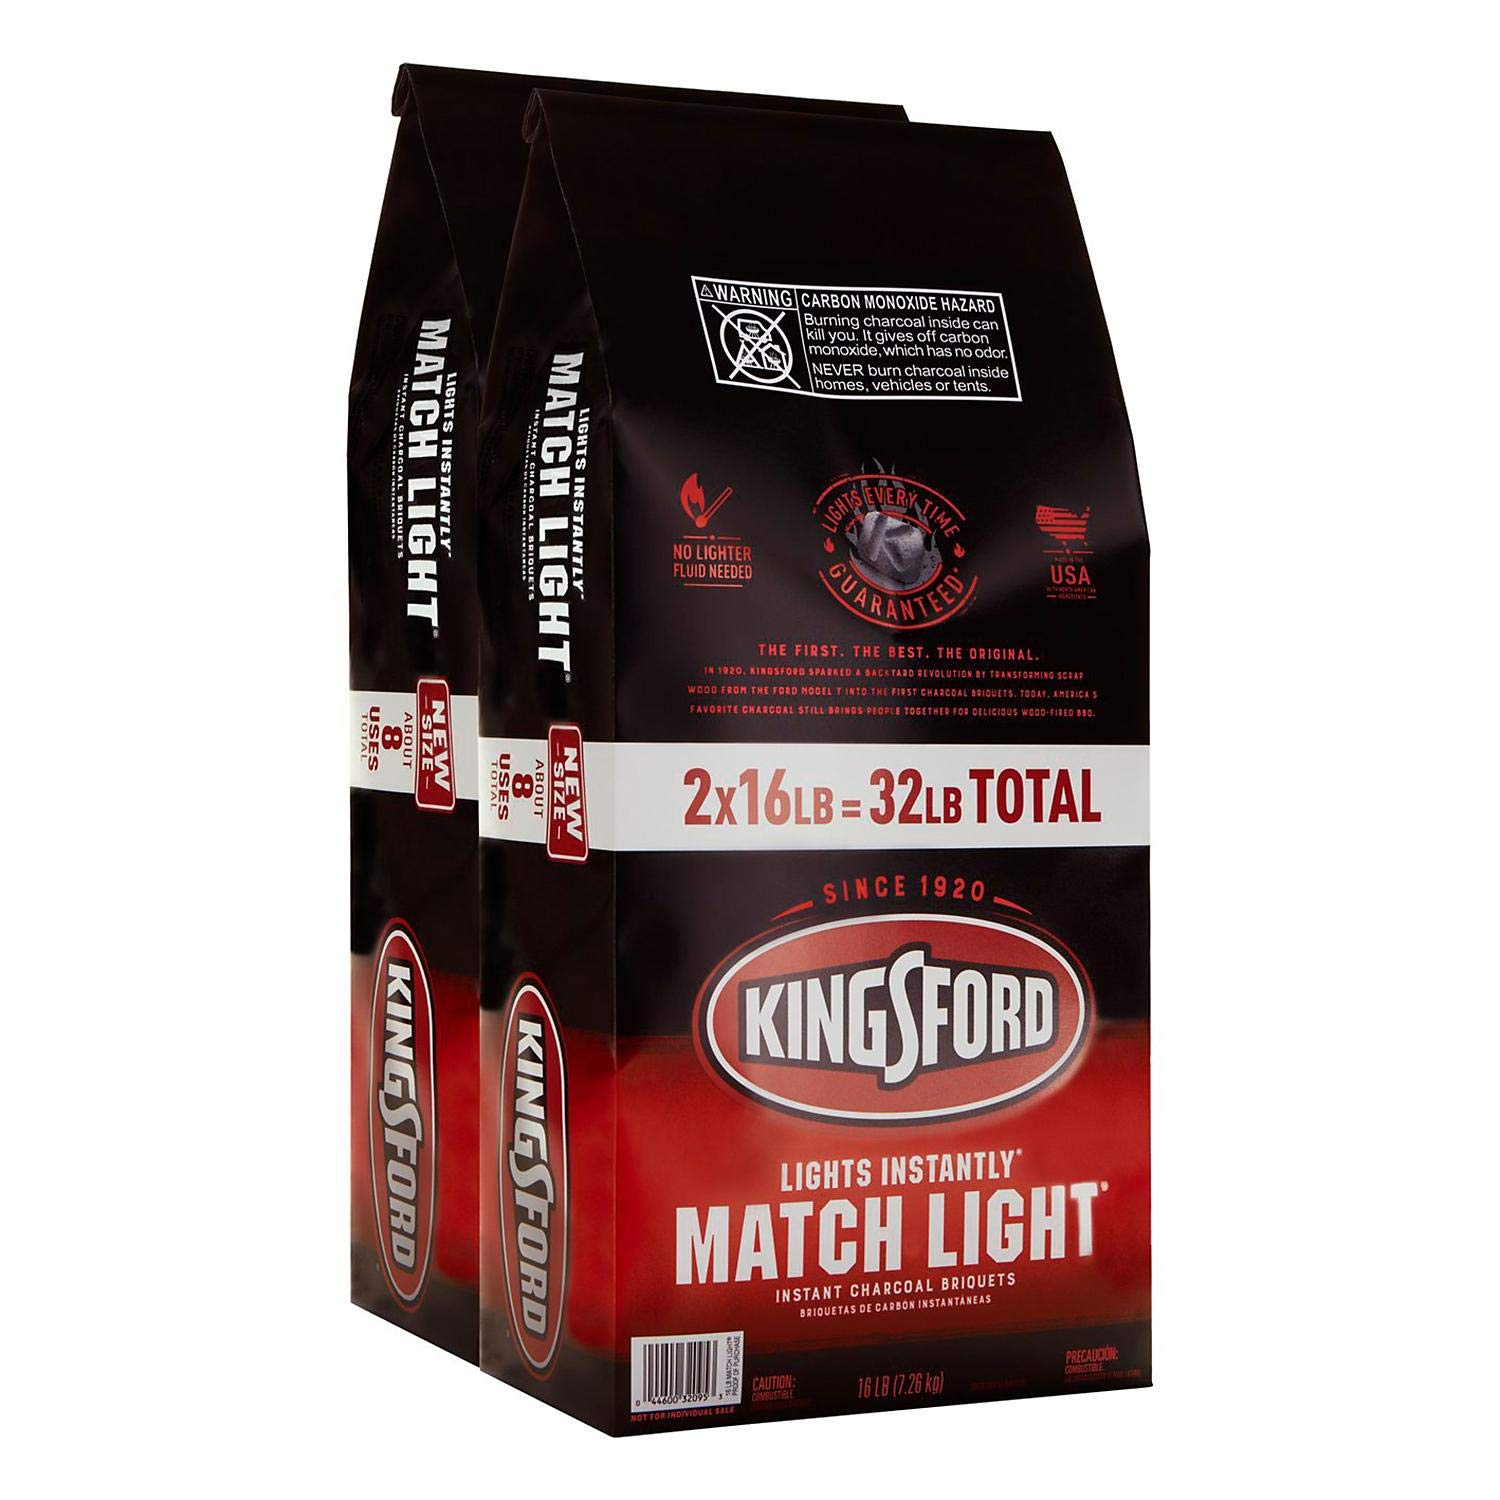 Kingsford MatchLight Instant Charcoal Briquets